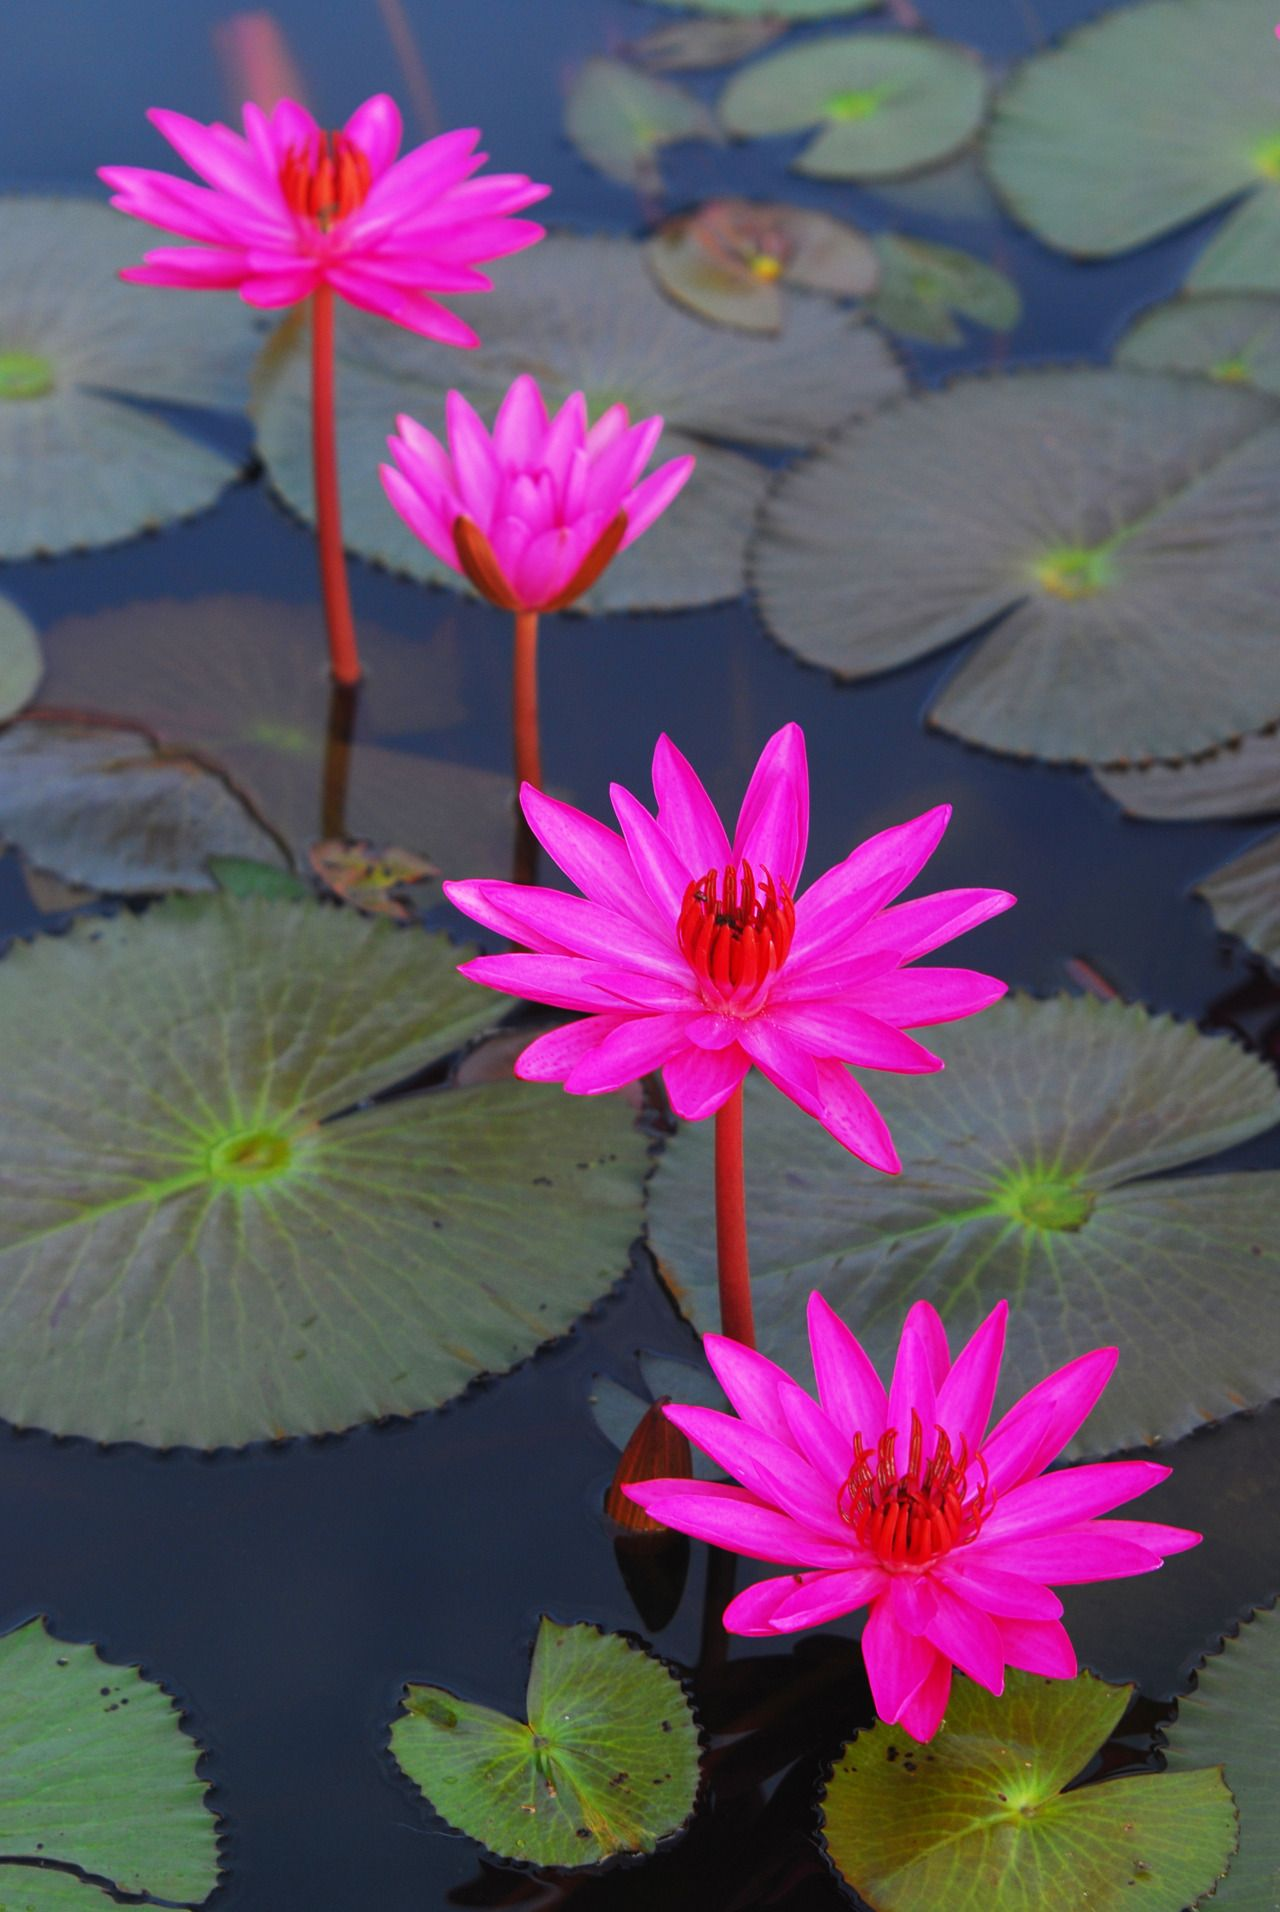 Bramphotography four pink lotus flowers allenamento for Pinterest fiori